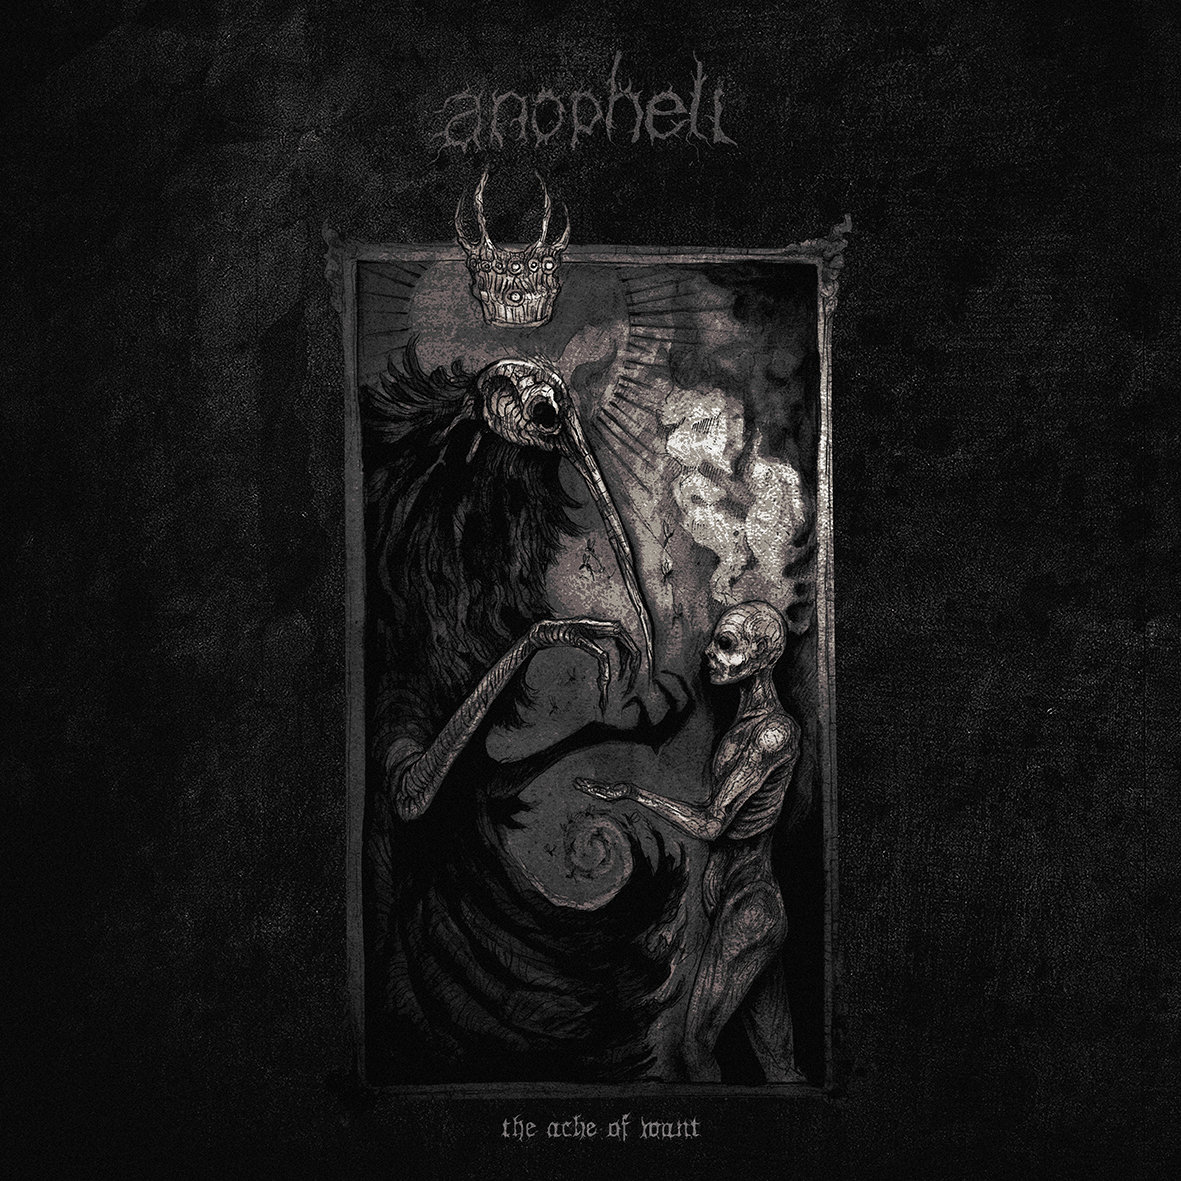 Anopheli - Acts Of Man @ 'The Ache Of Want' album (metal, cello)